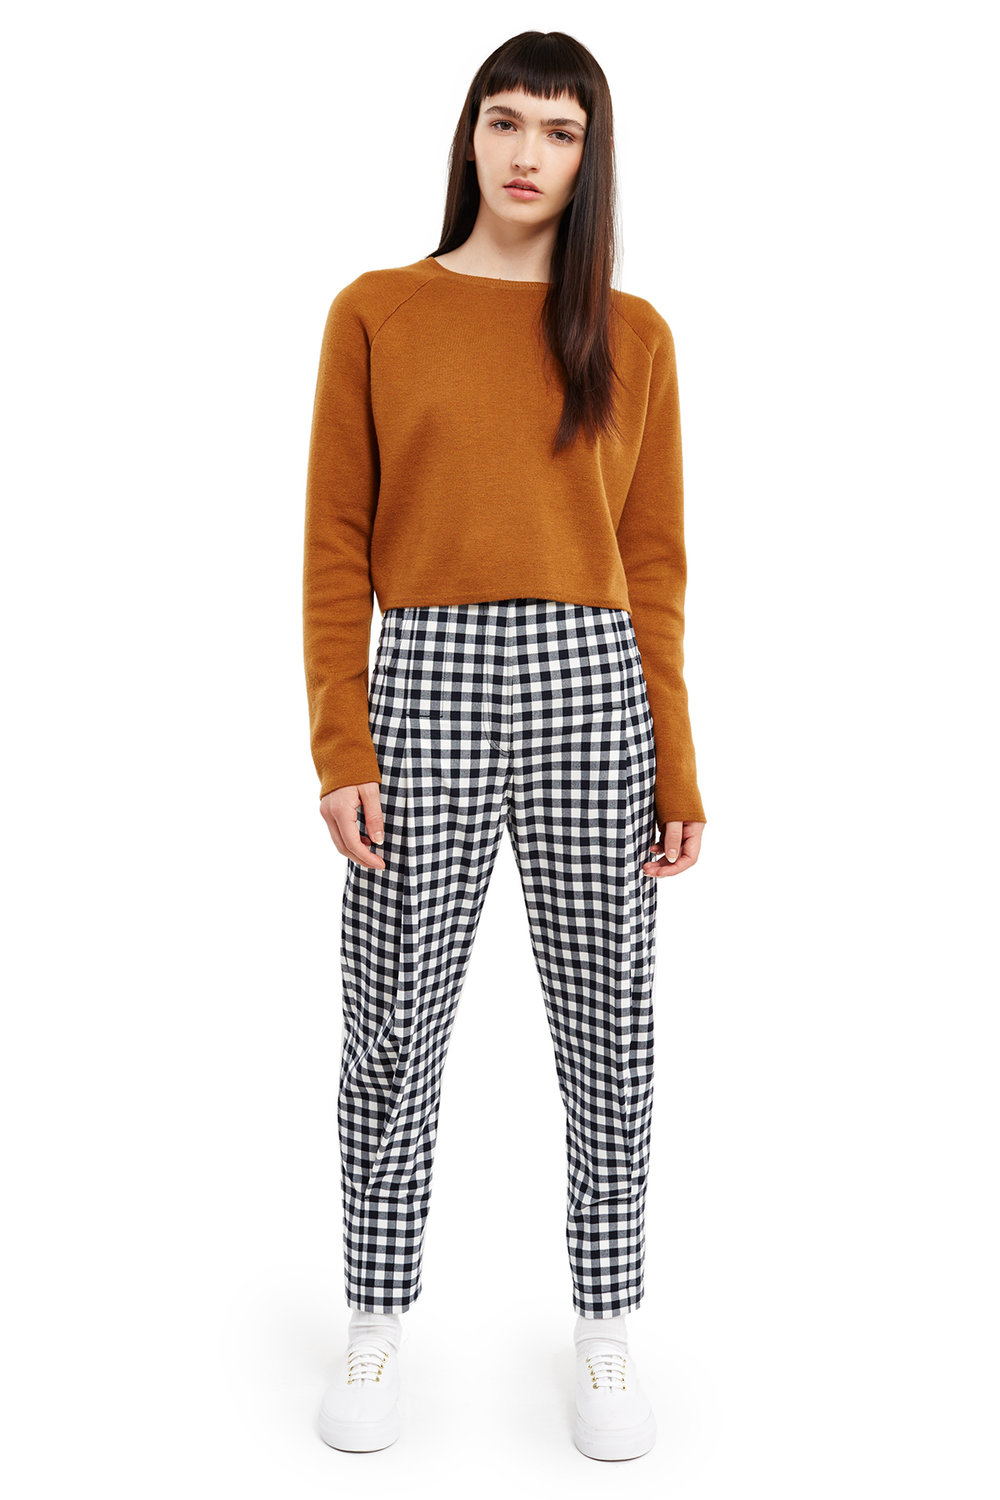 Esprit by Opening Ceremony PLAID PANTS. Opening Ceremony. $155.